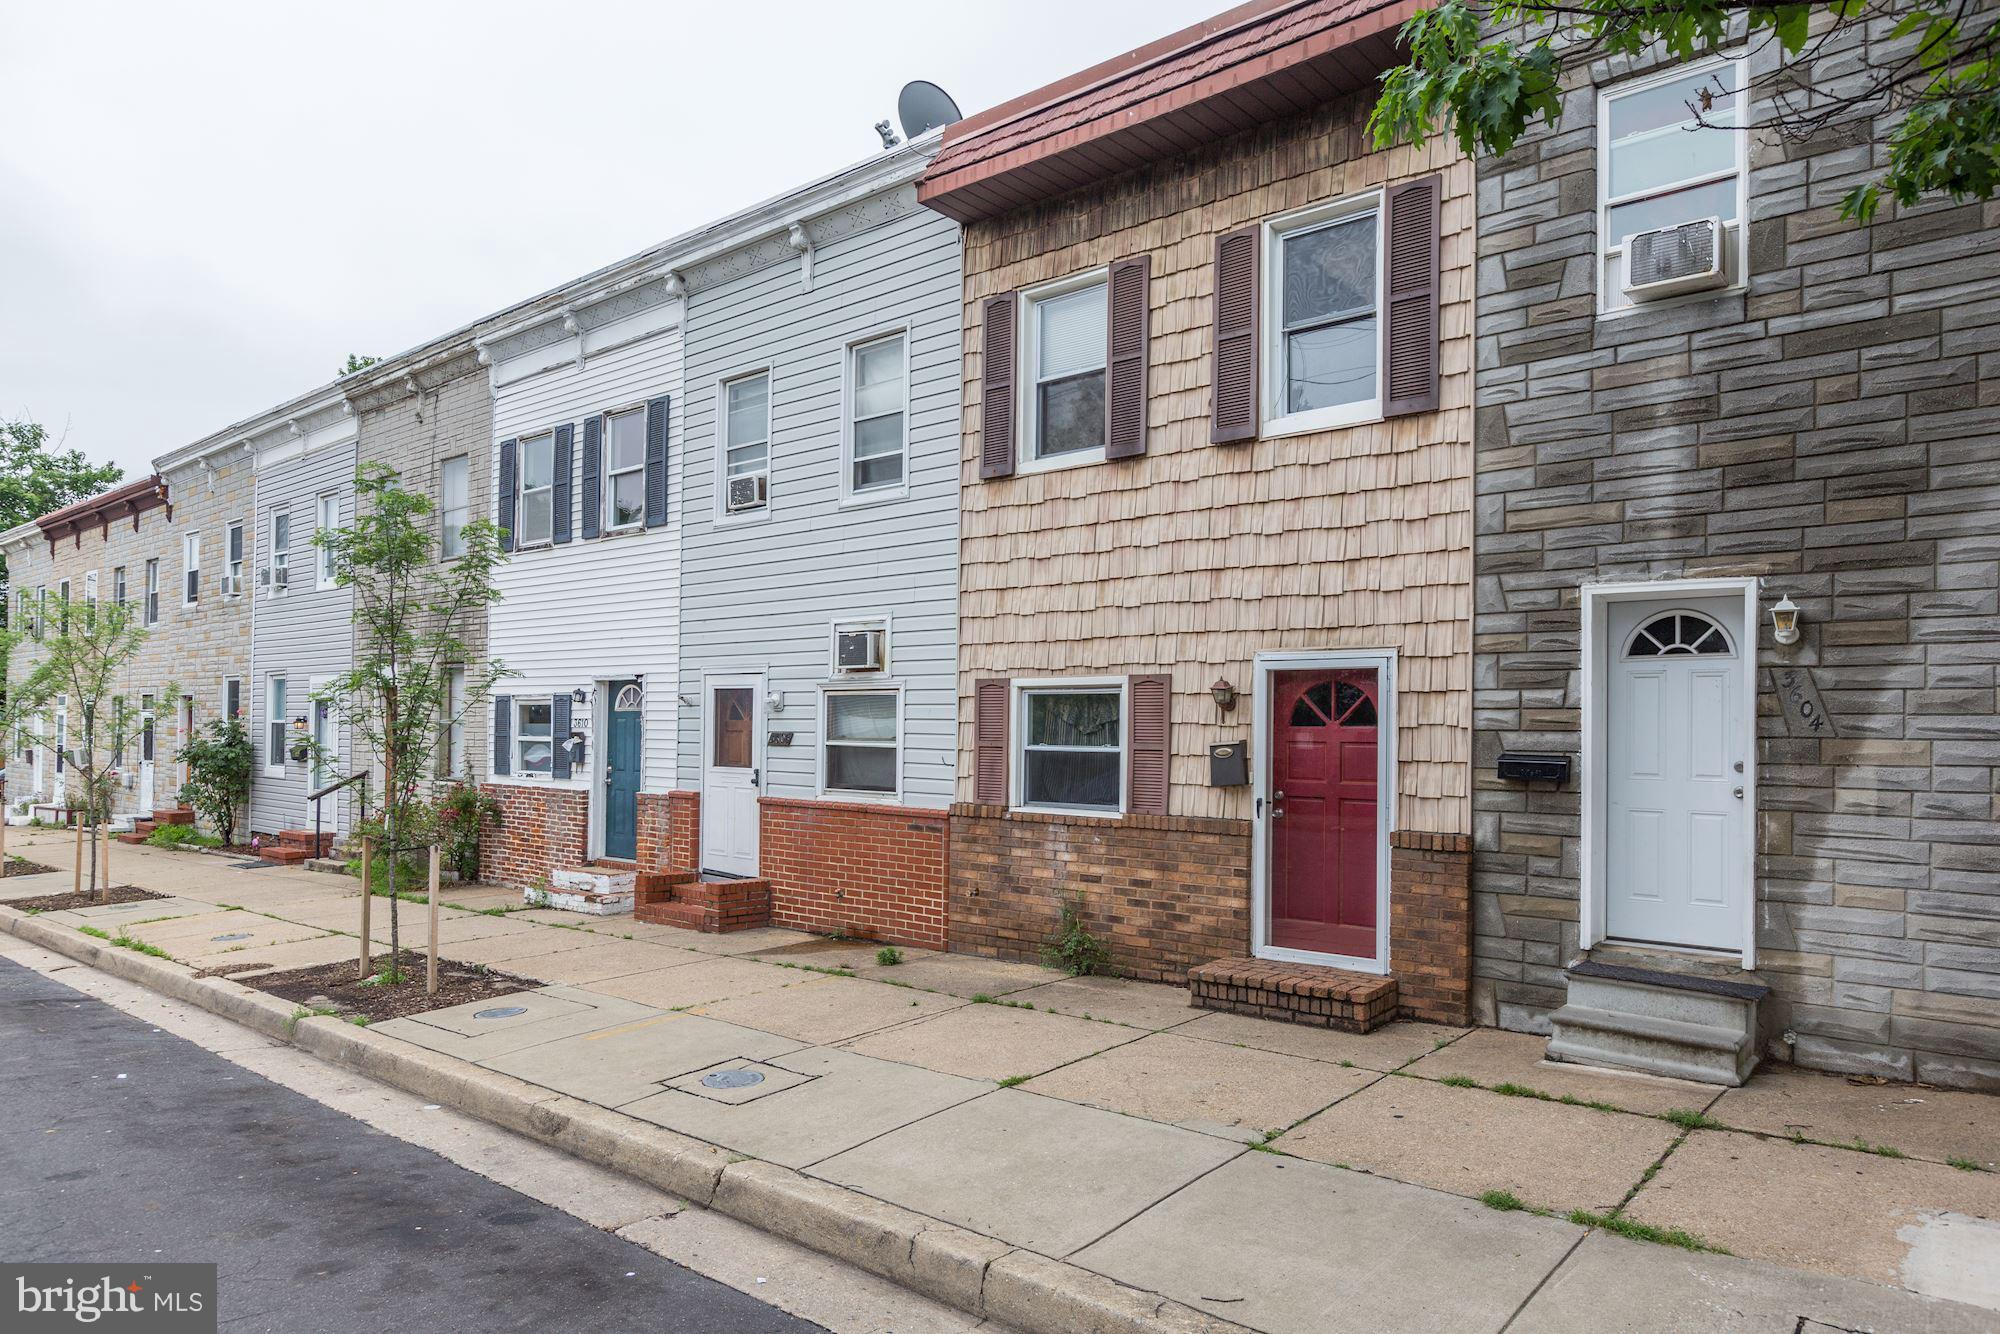 Great opportunity for first time home buyer. Please include As is addendum. Great rental property. Please allow 24 hours notice as this property is tenant occupied. Contract fell through back on market.